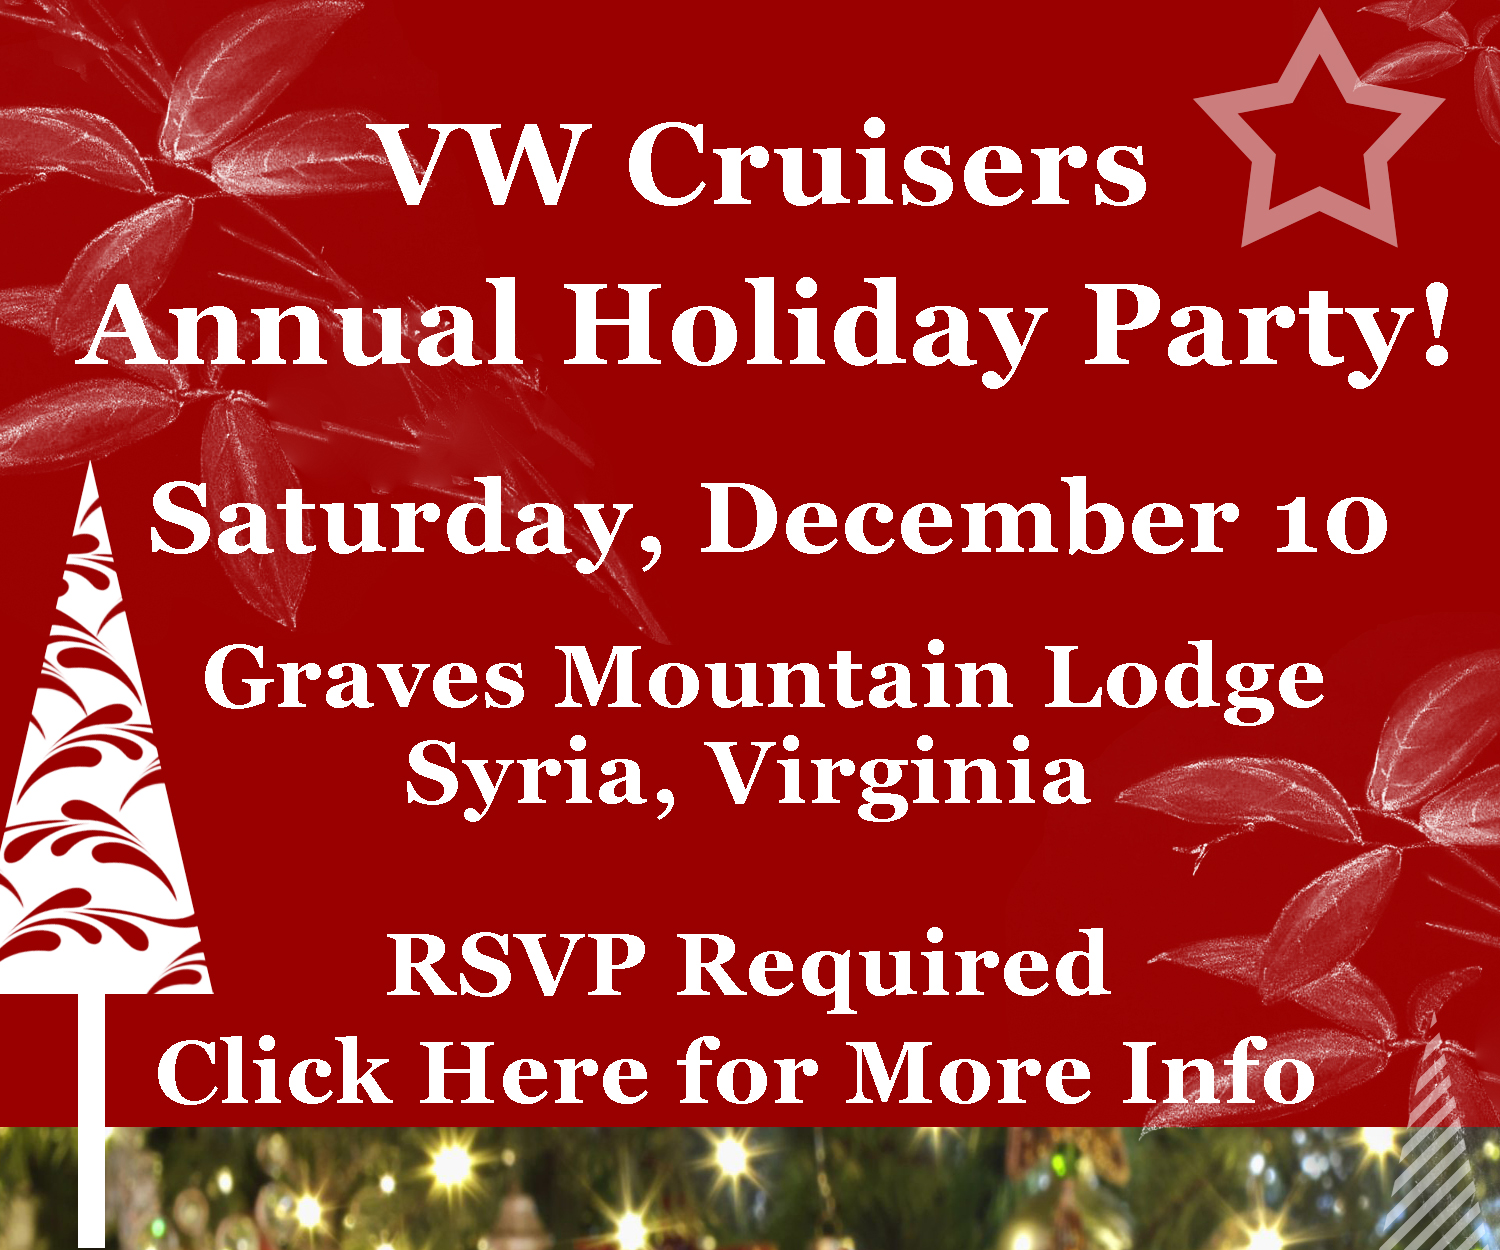 2016 VW Cruisers Annual Holiday Christmas Party!